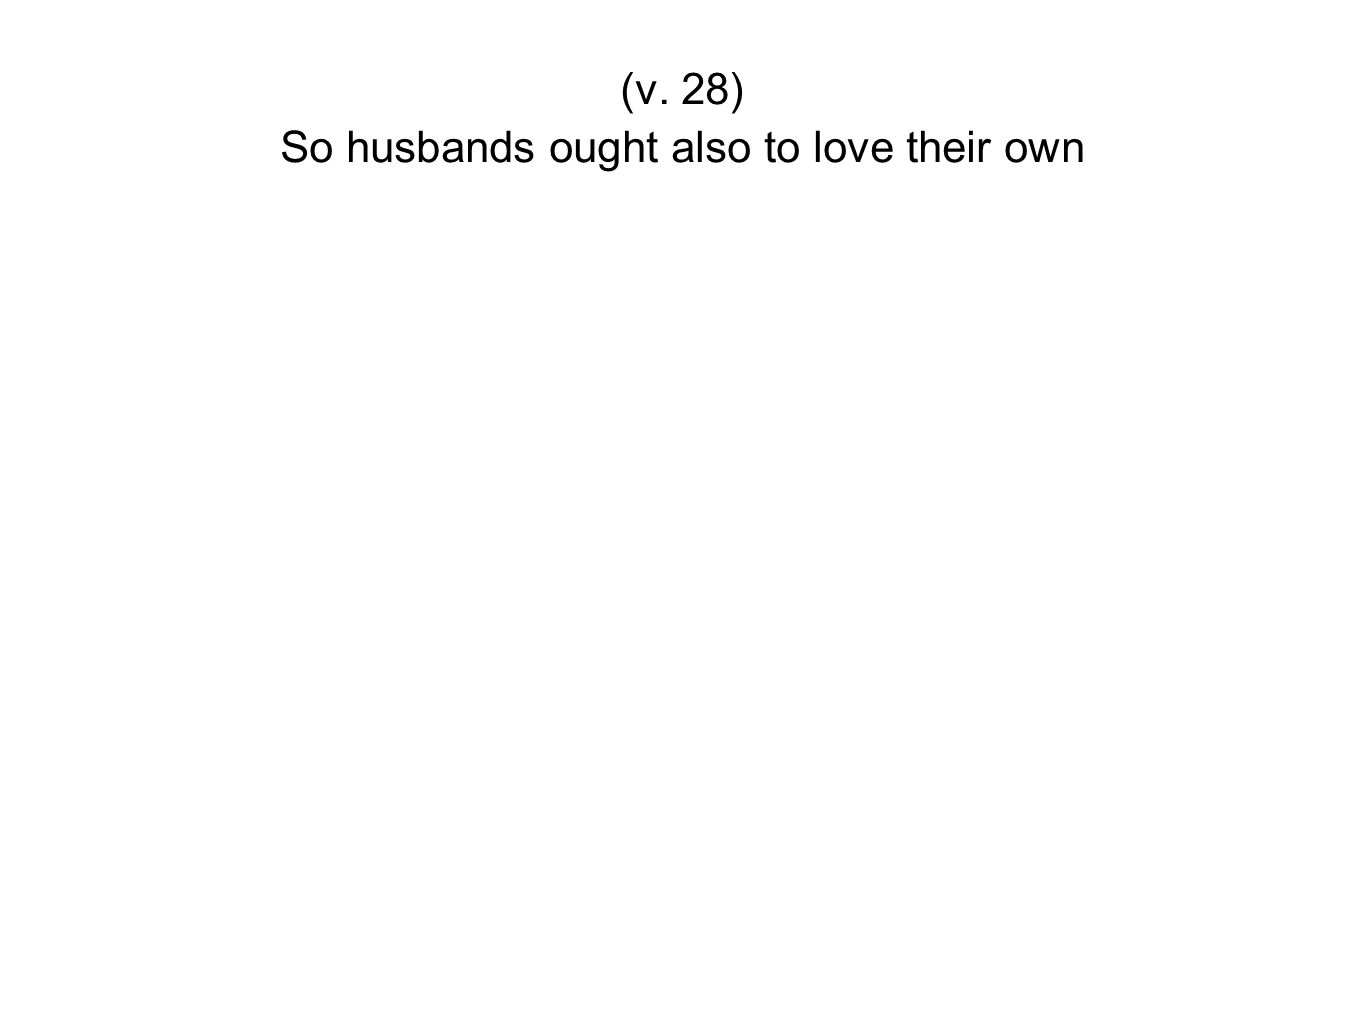 So husbands ought also to love their own